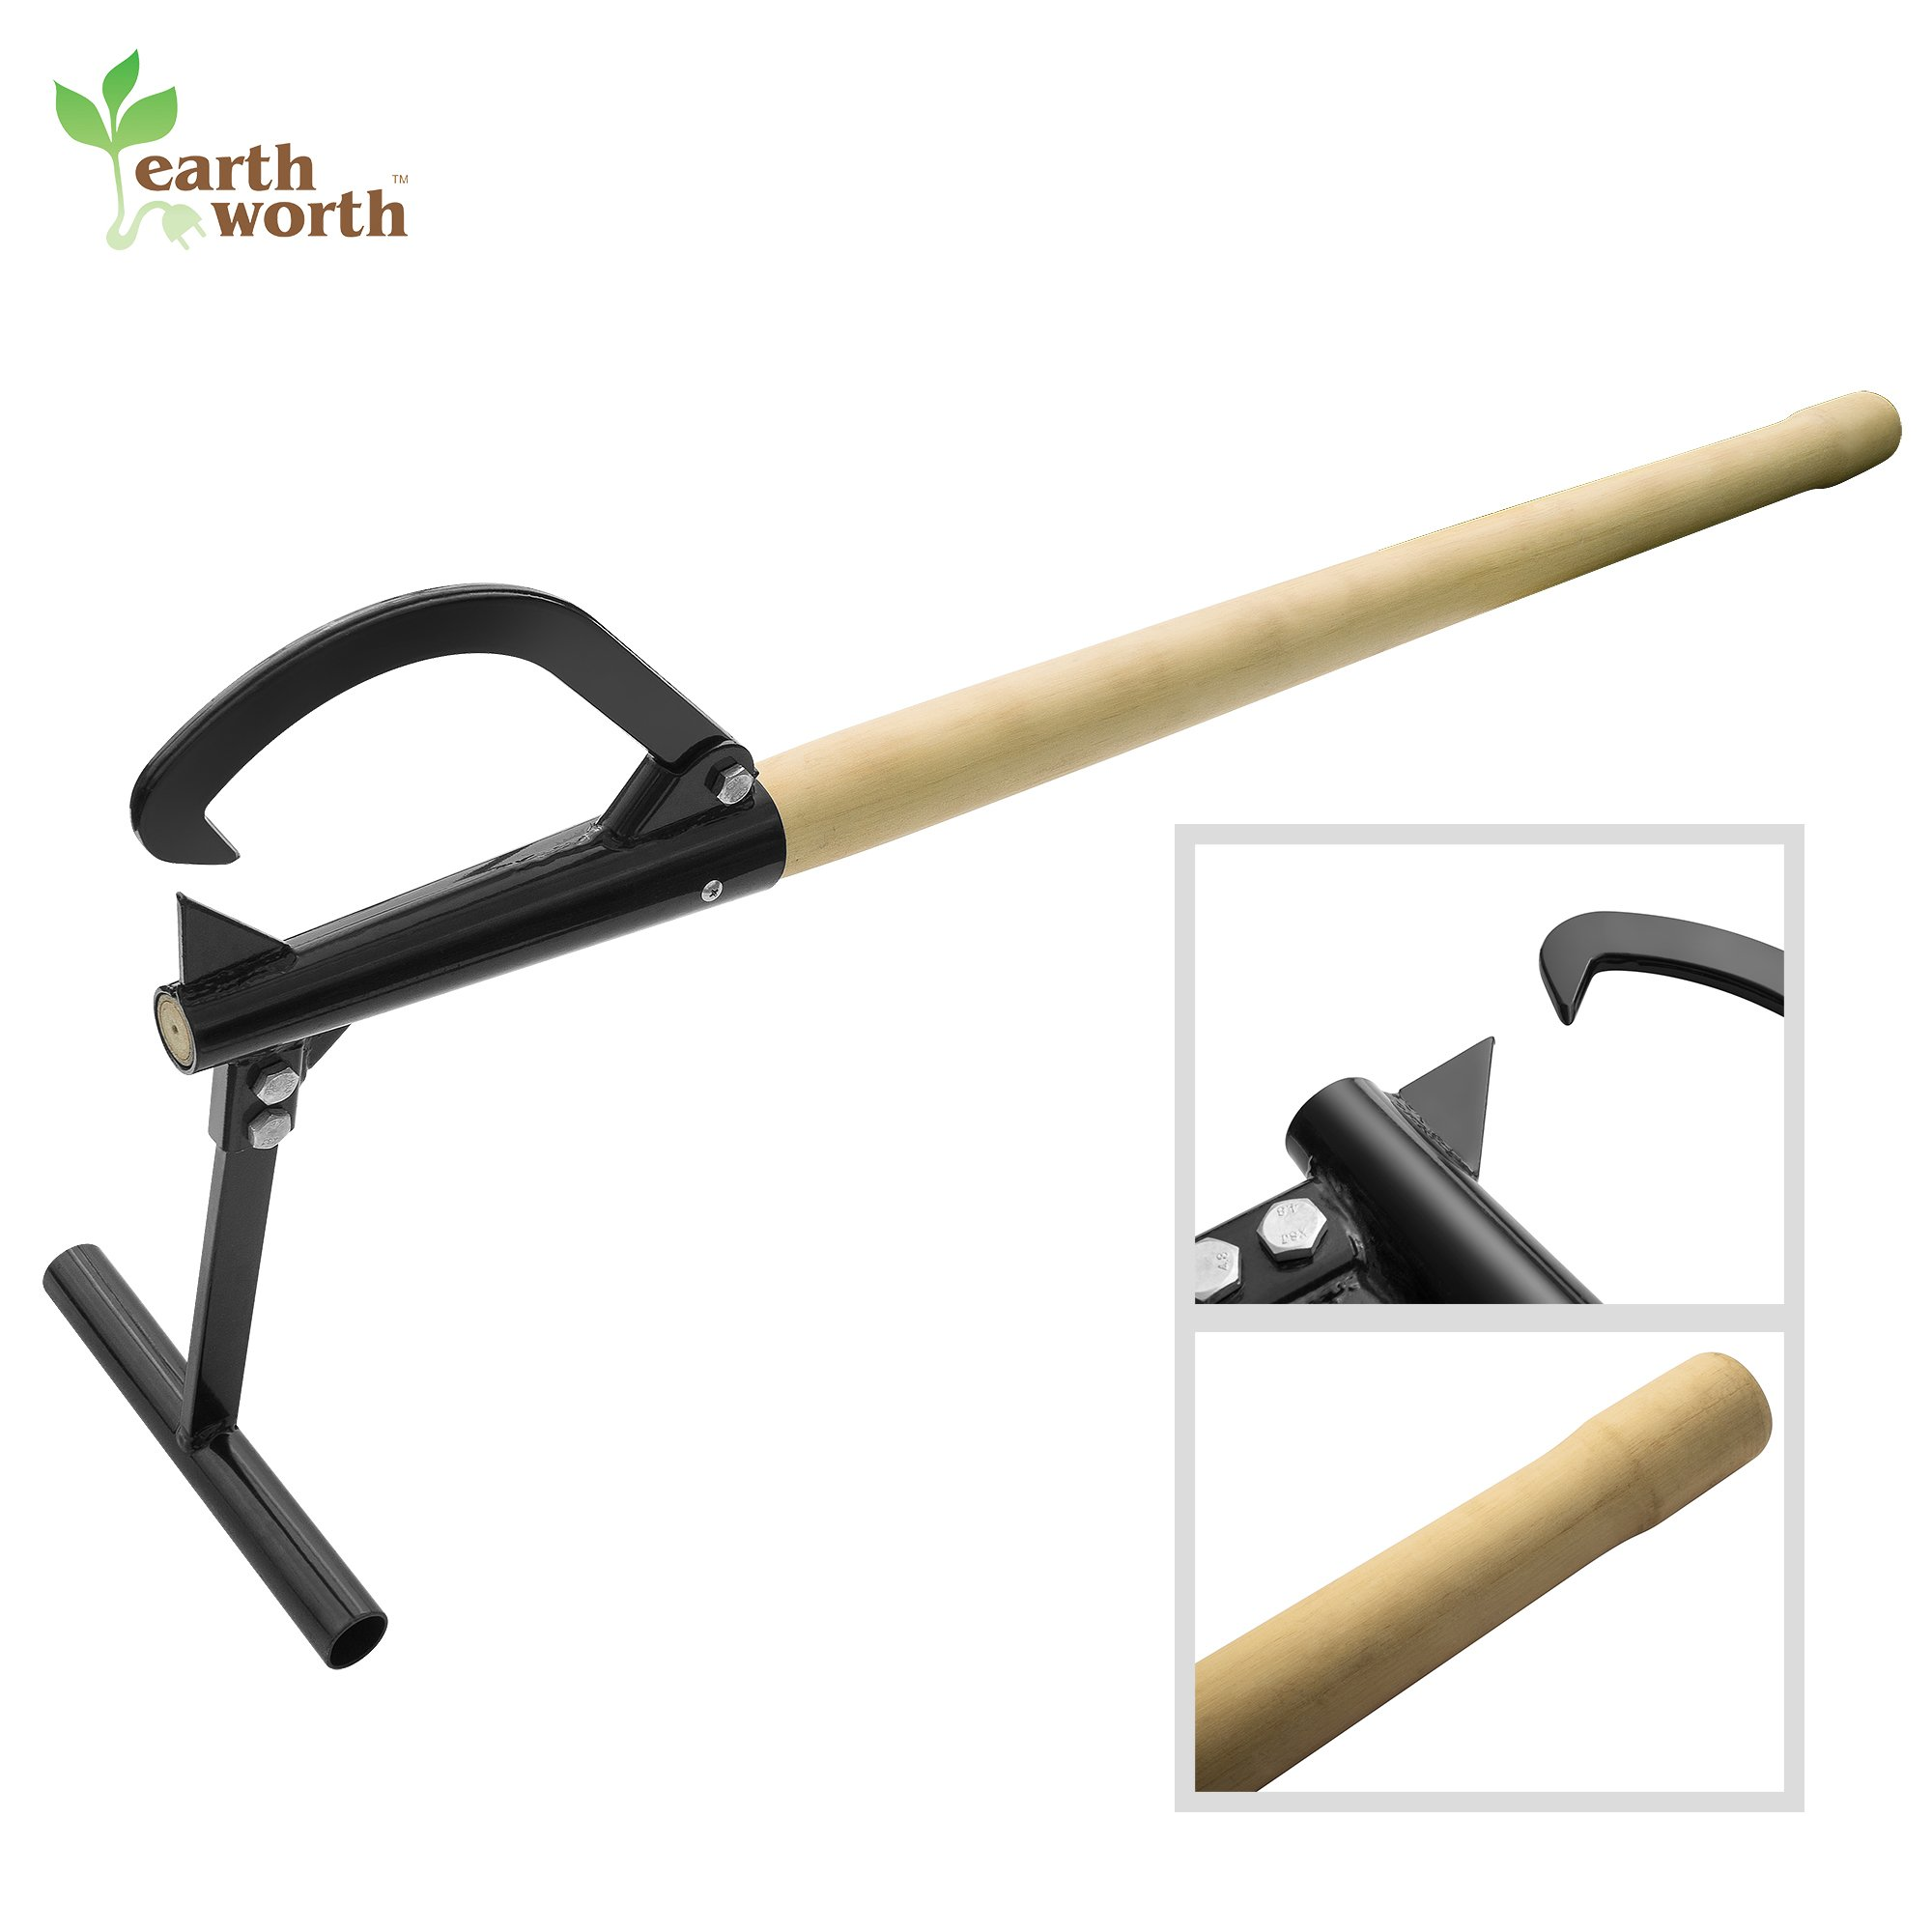 Earth Worth 83-DT5219 Timberjack | Log Lifter | Wood Handle | 48 Inches